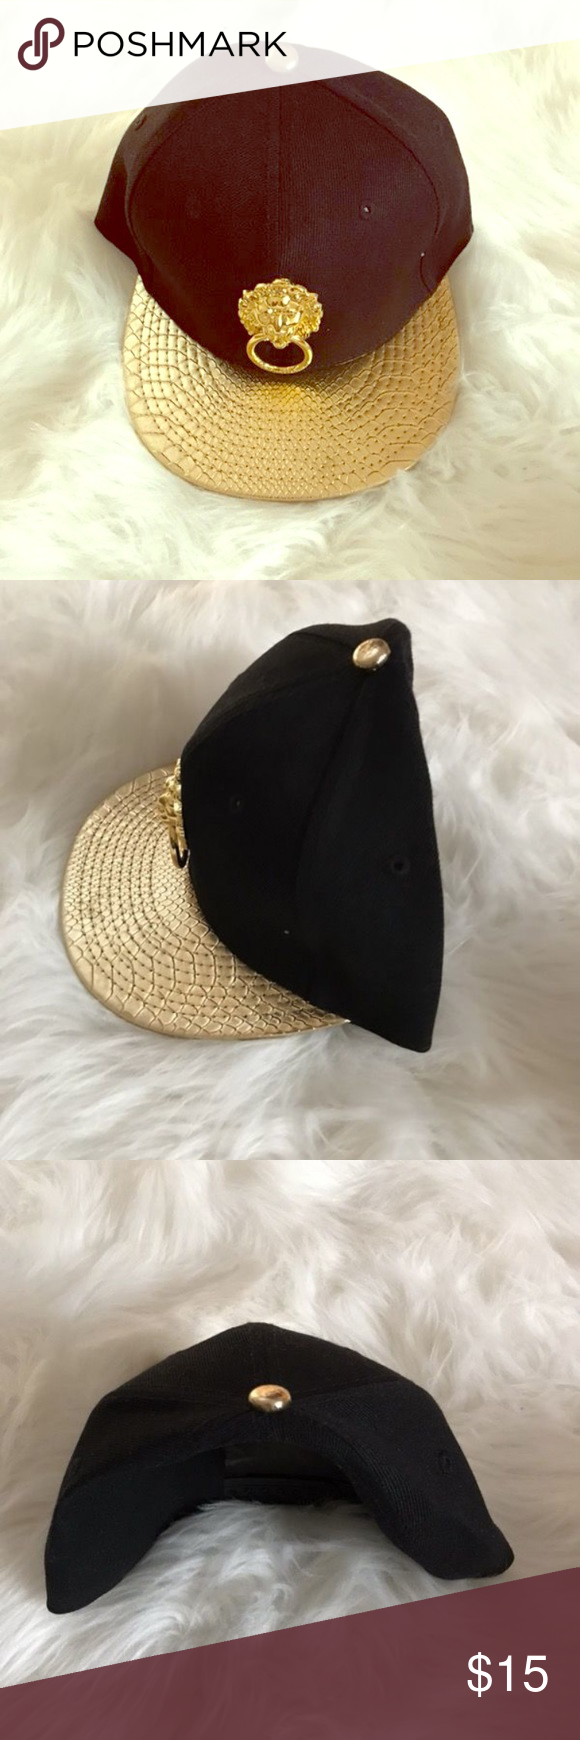 Black And Gold Hat Gold Hats Women Accessories Hats Unisex Hat